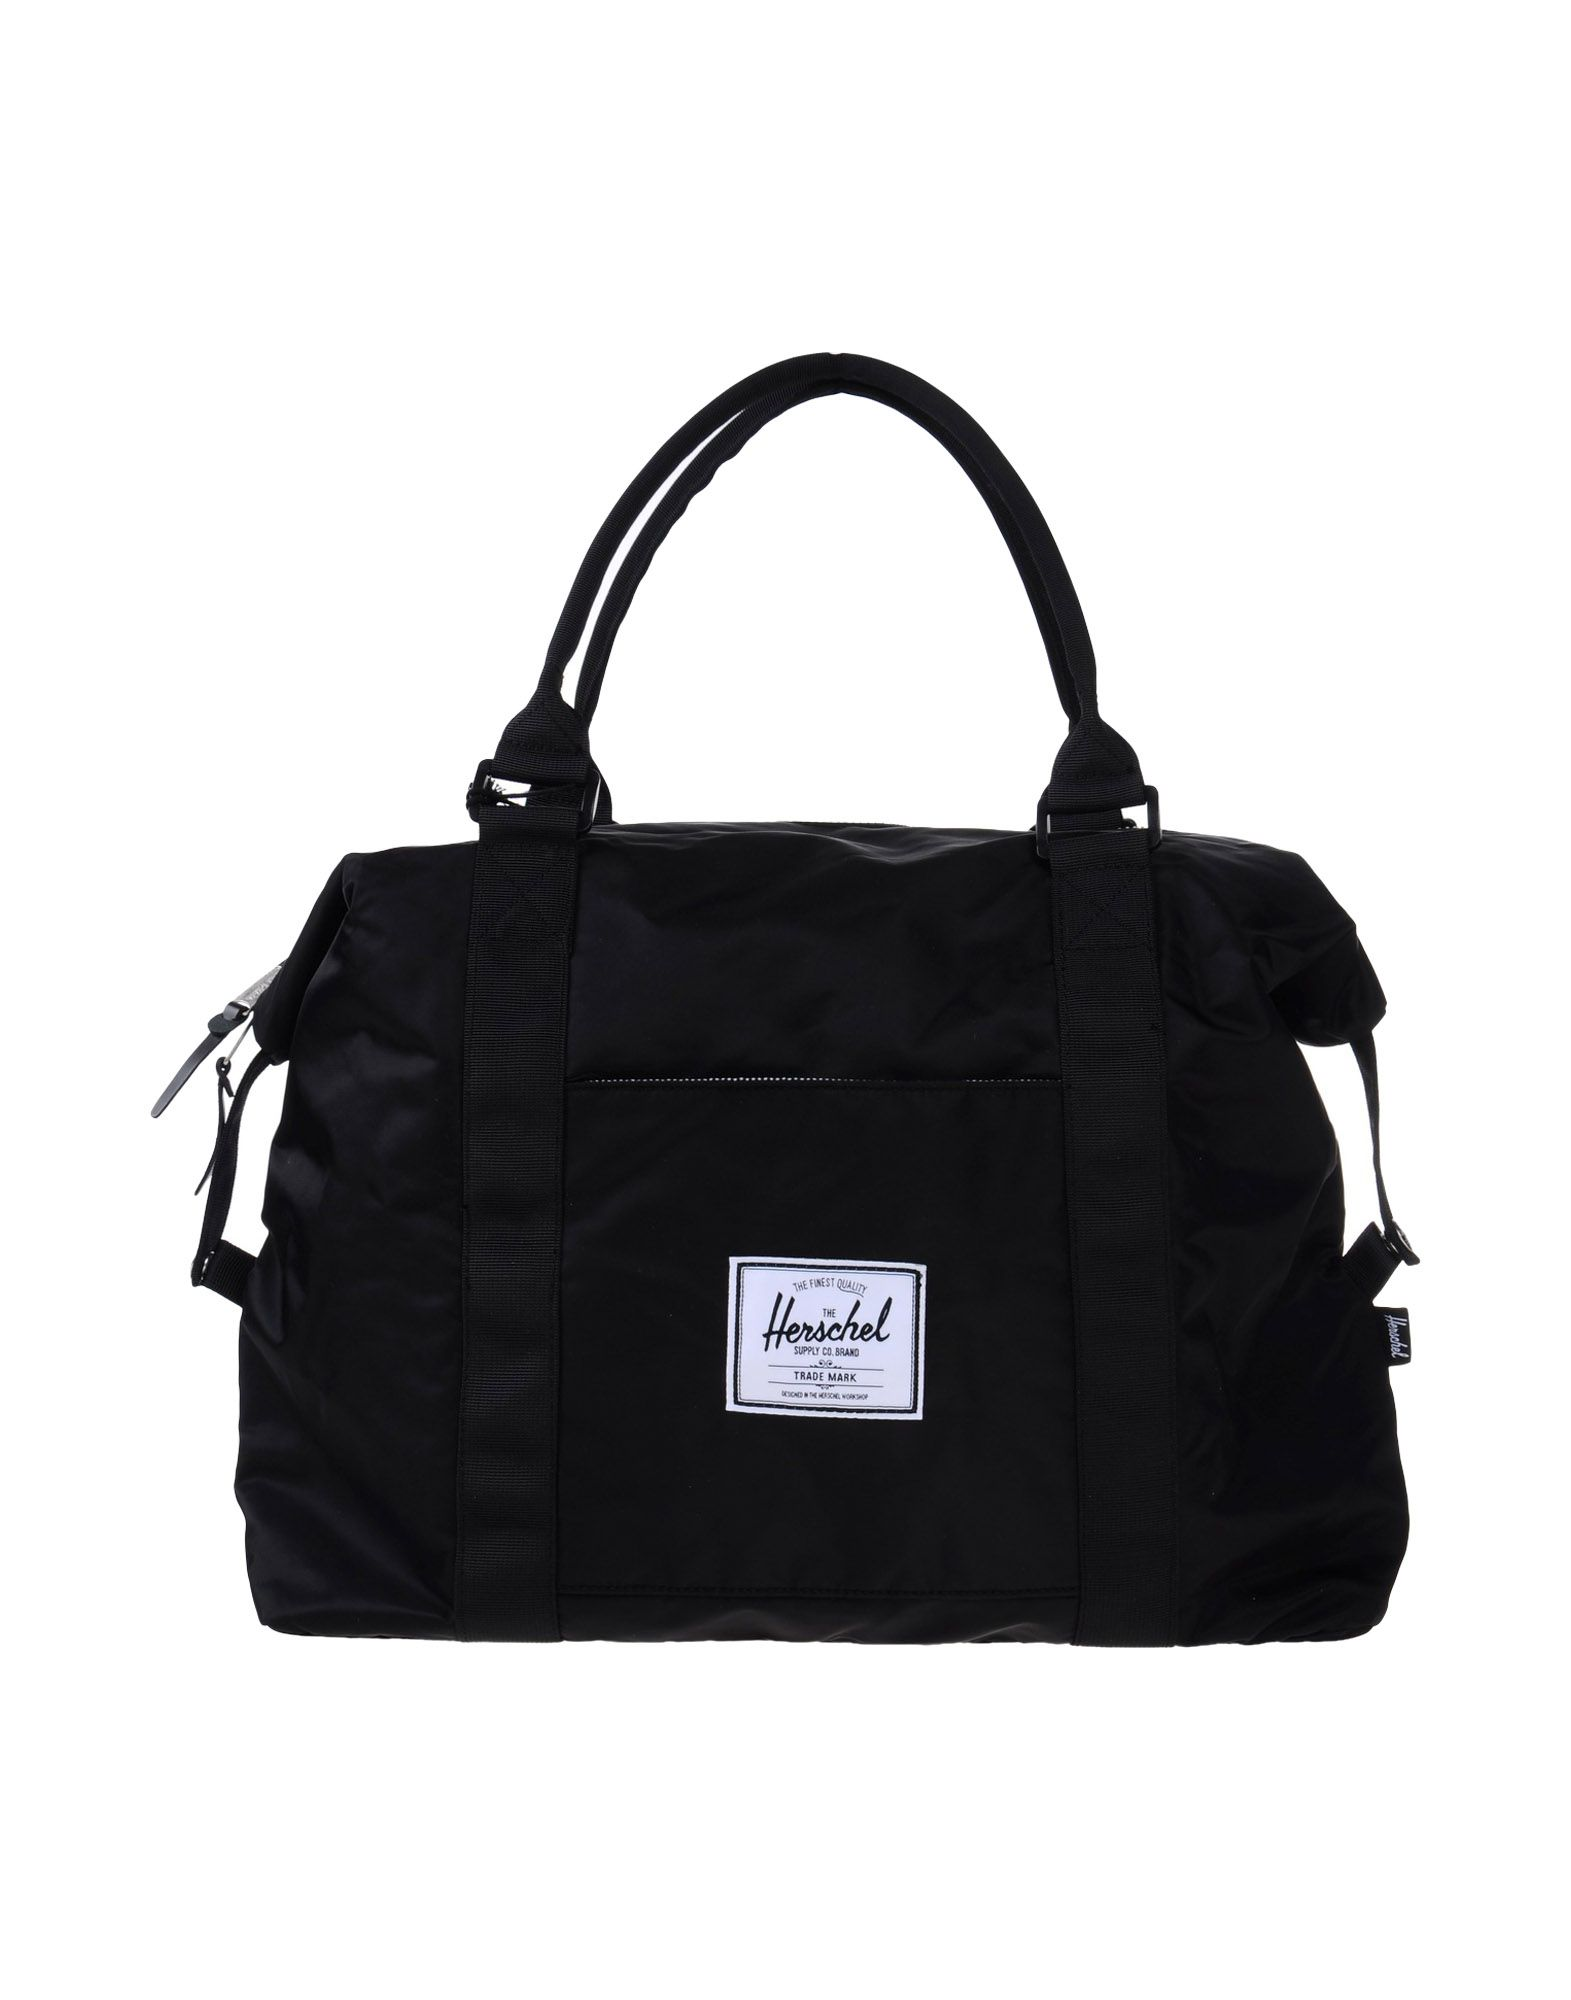 The Herschel Supply Co. Brand Handbags